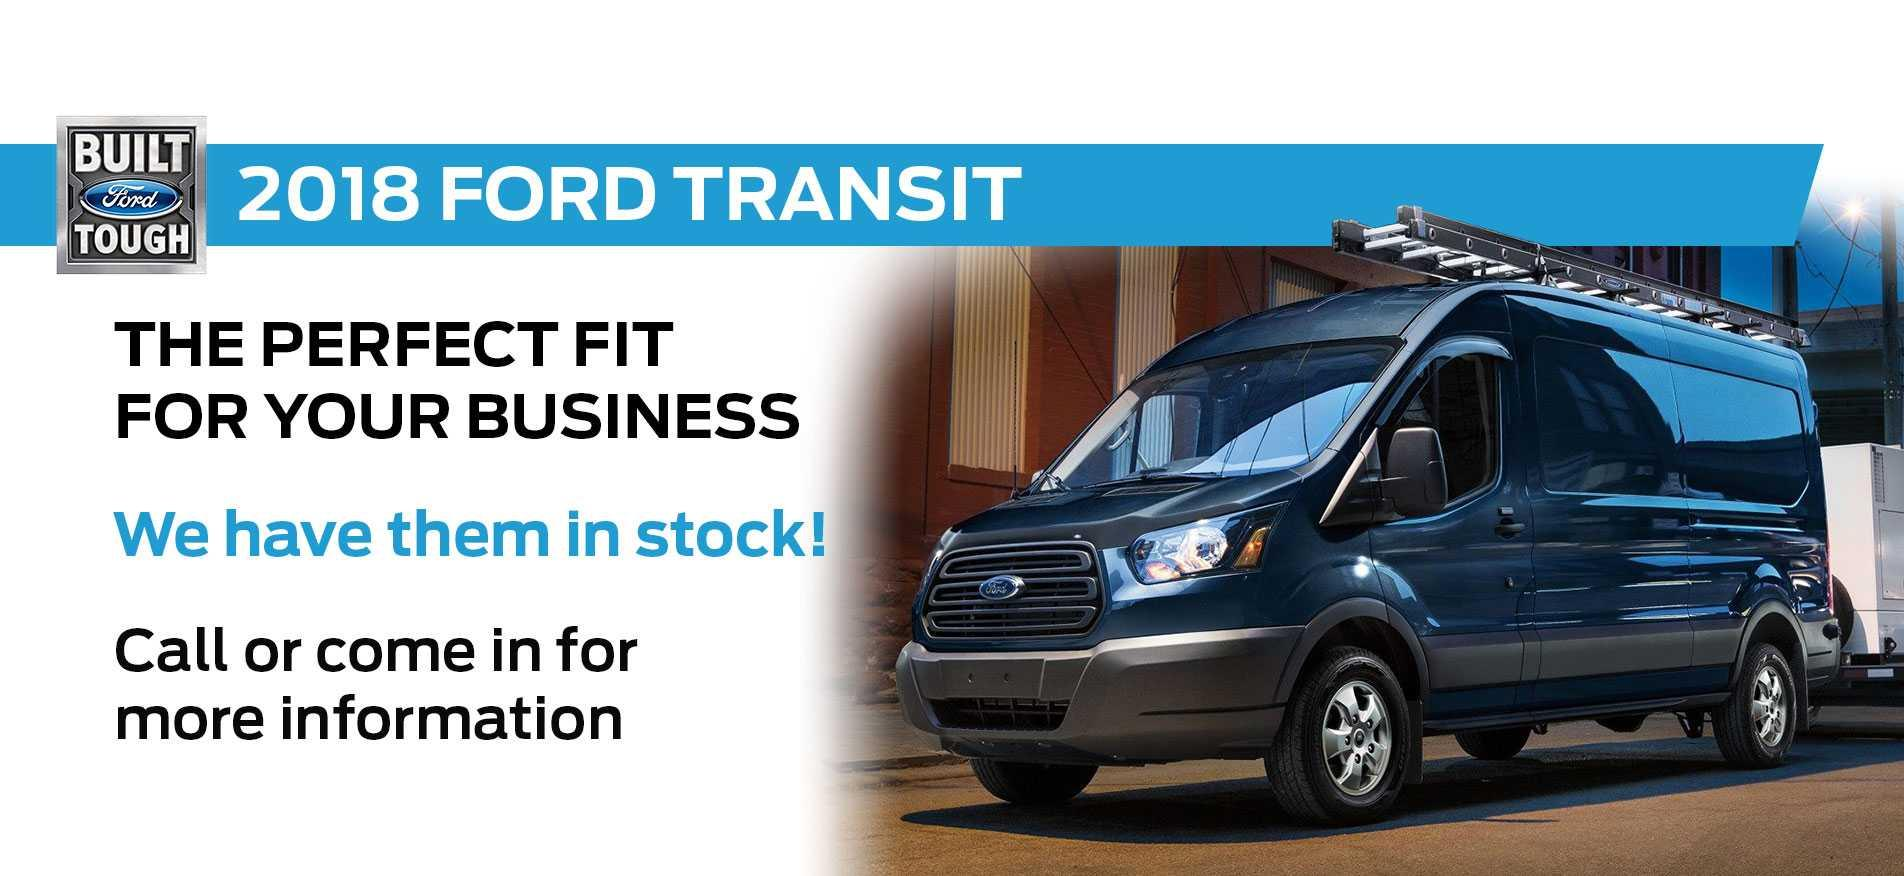 2018 Transit in Stock